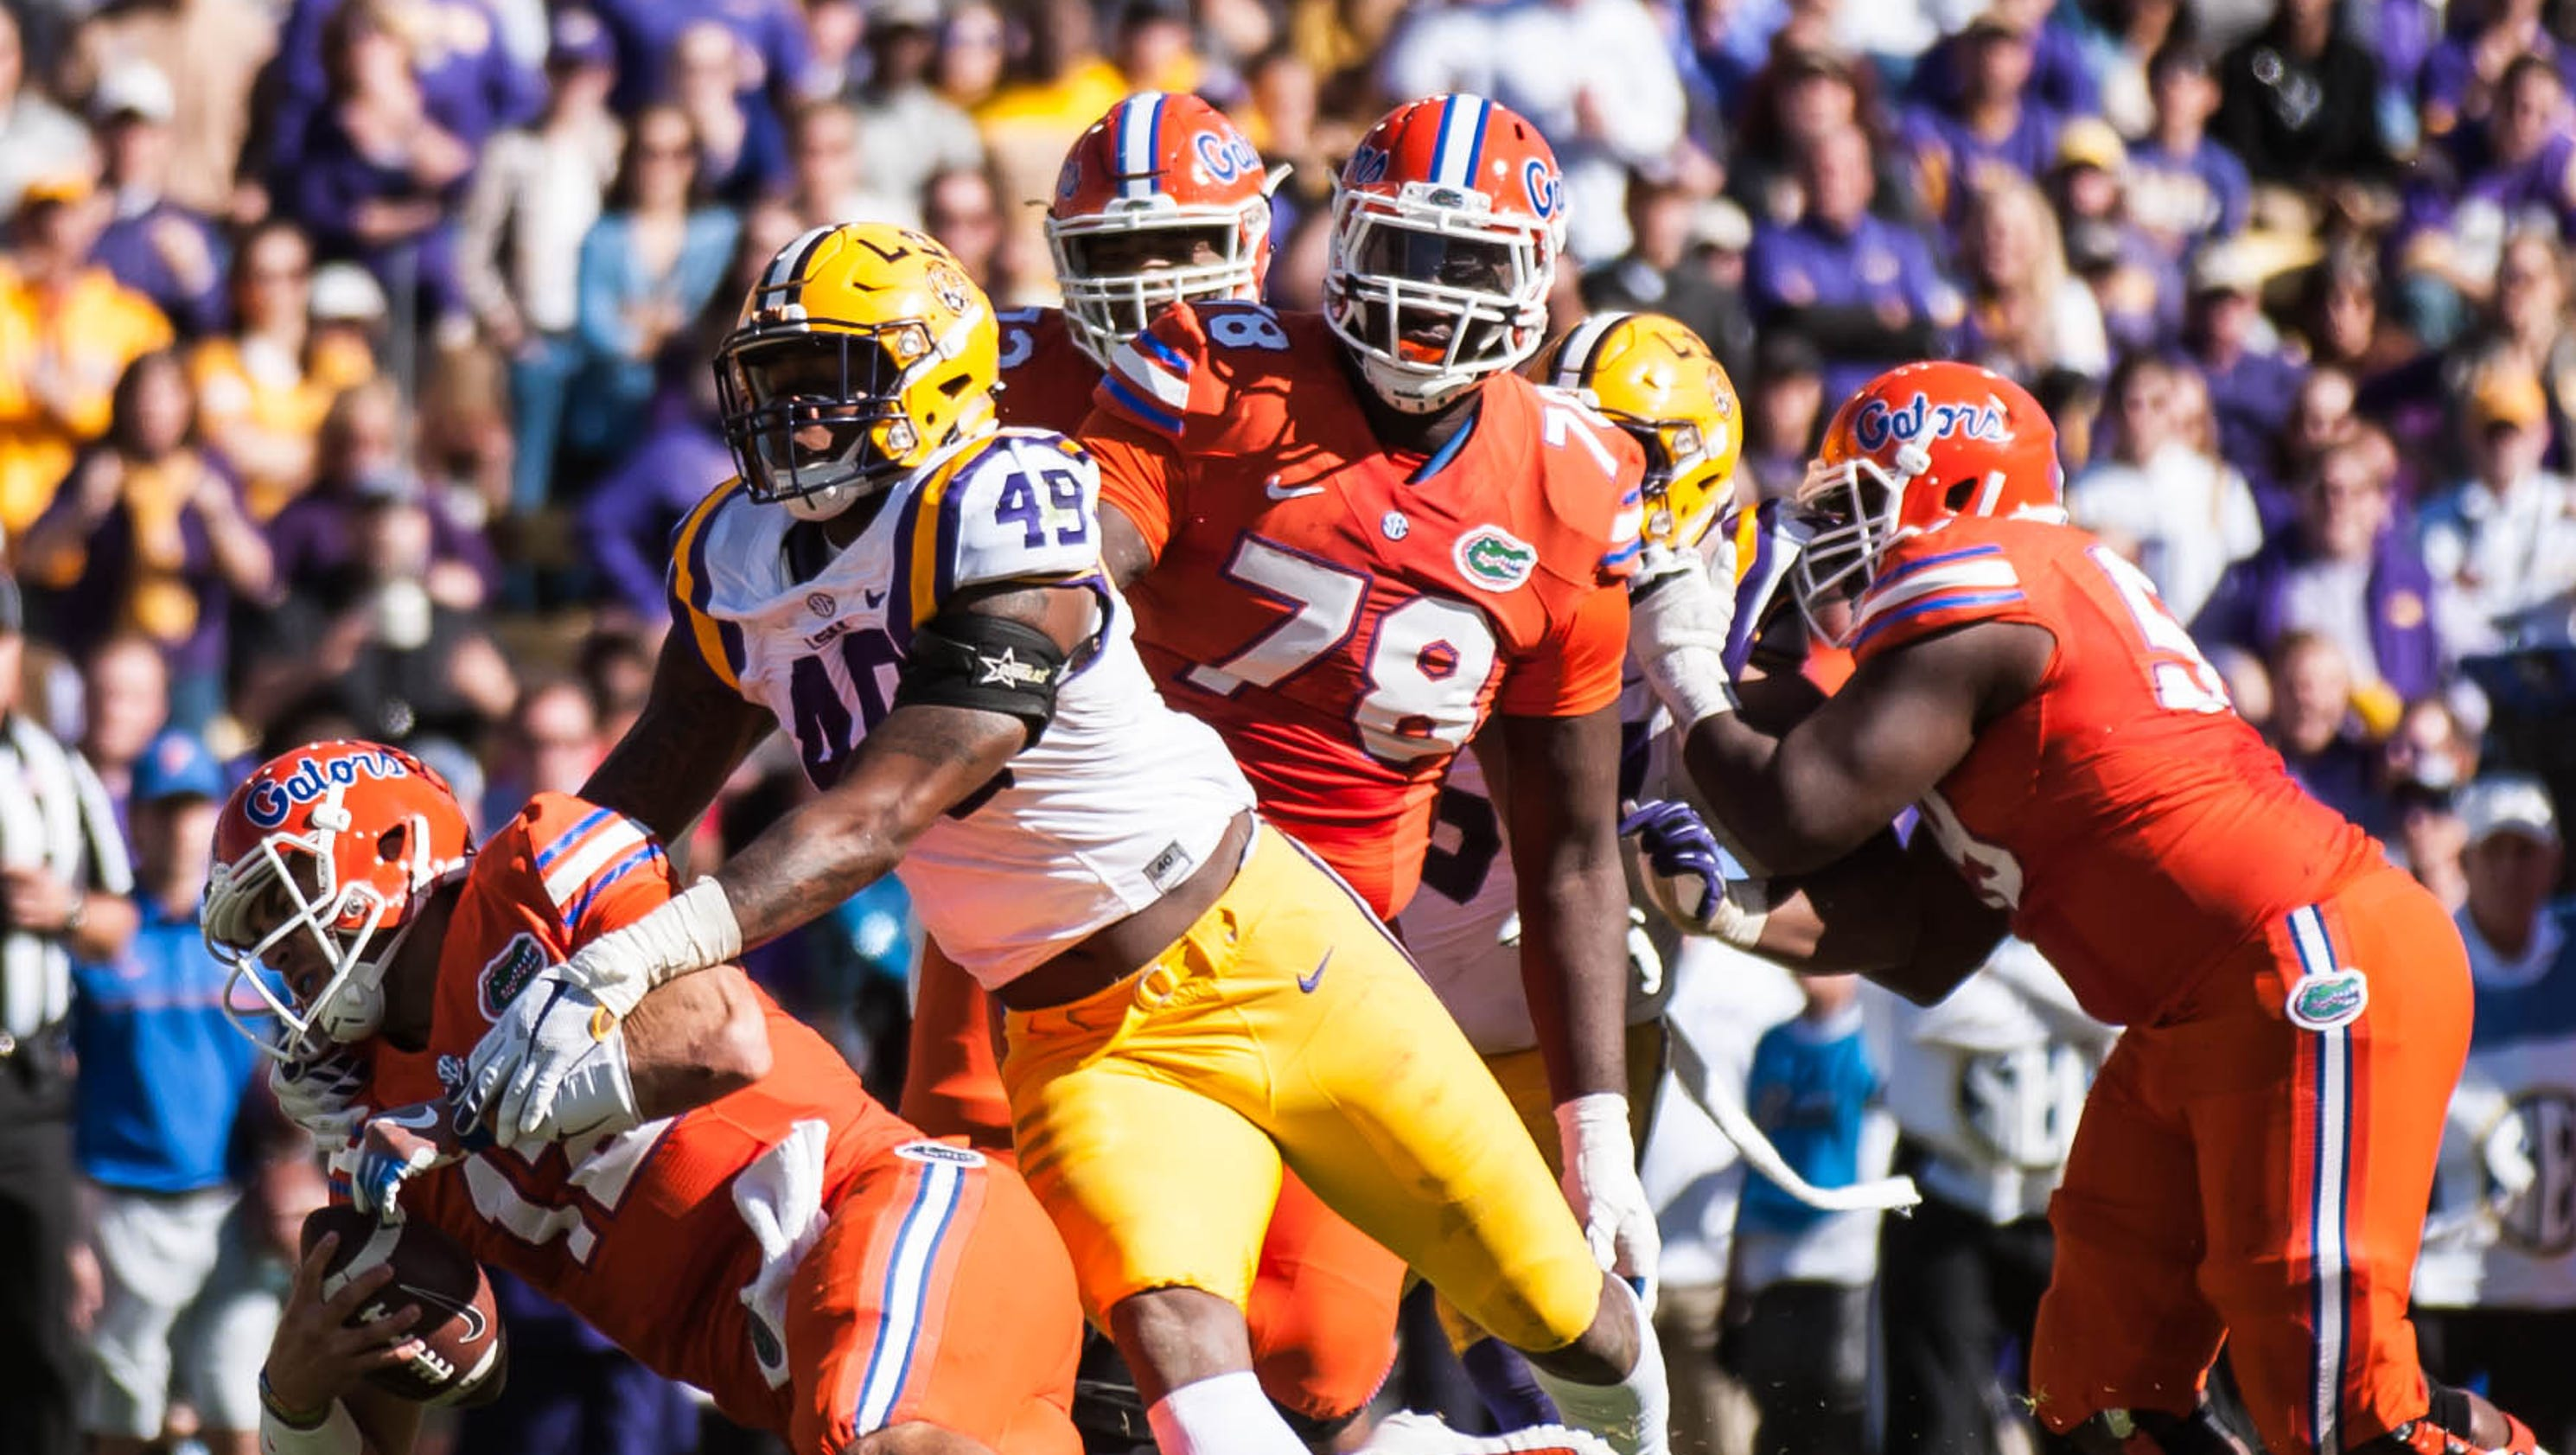 636151738675703622-florida-vs-lsu-11192016-004